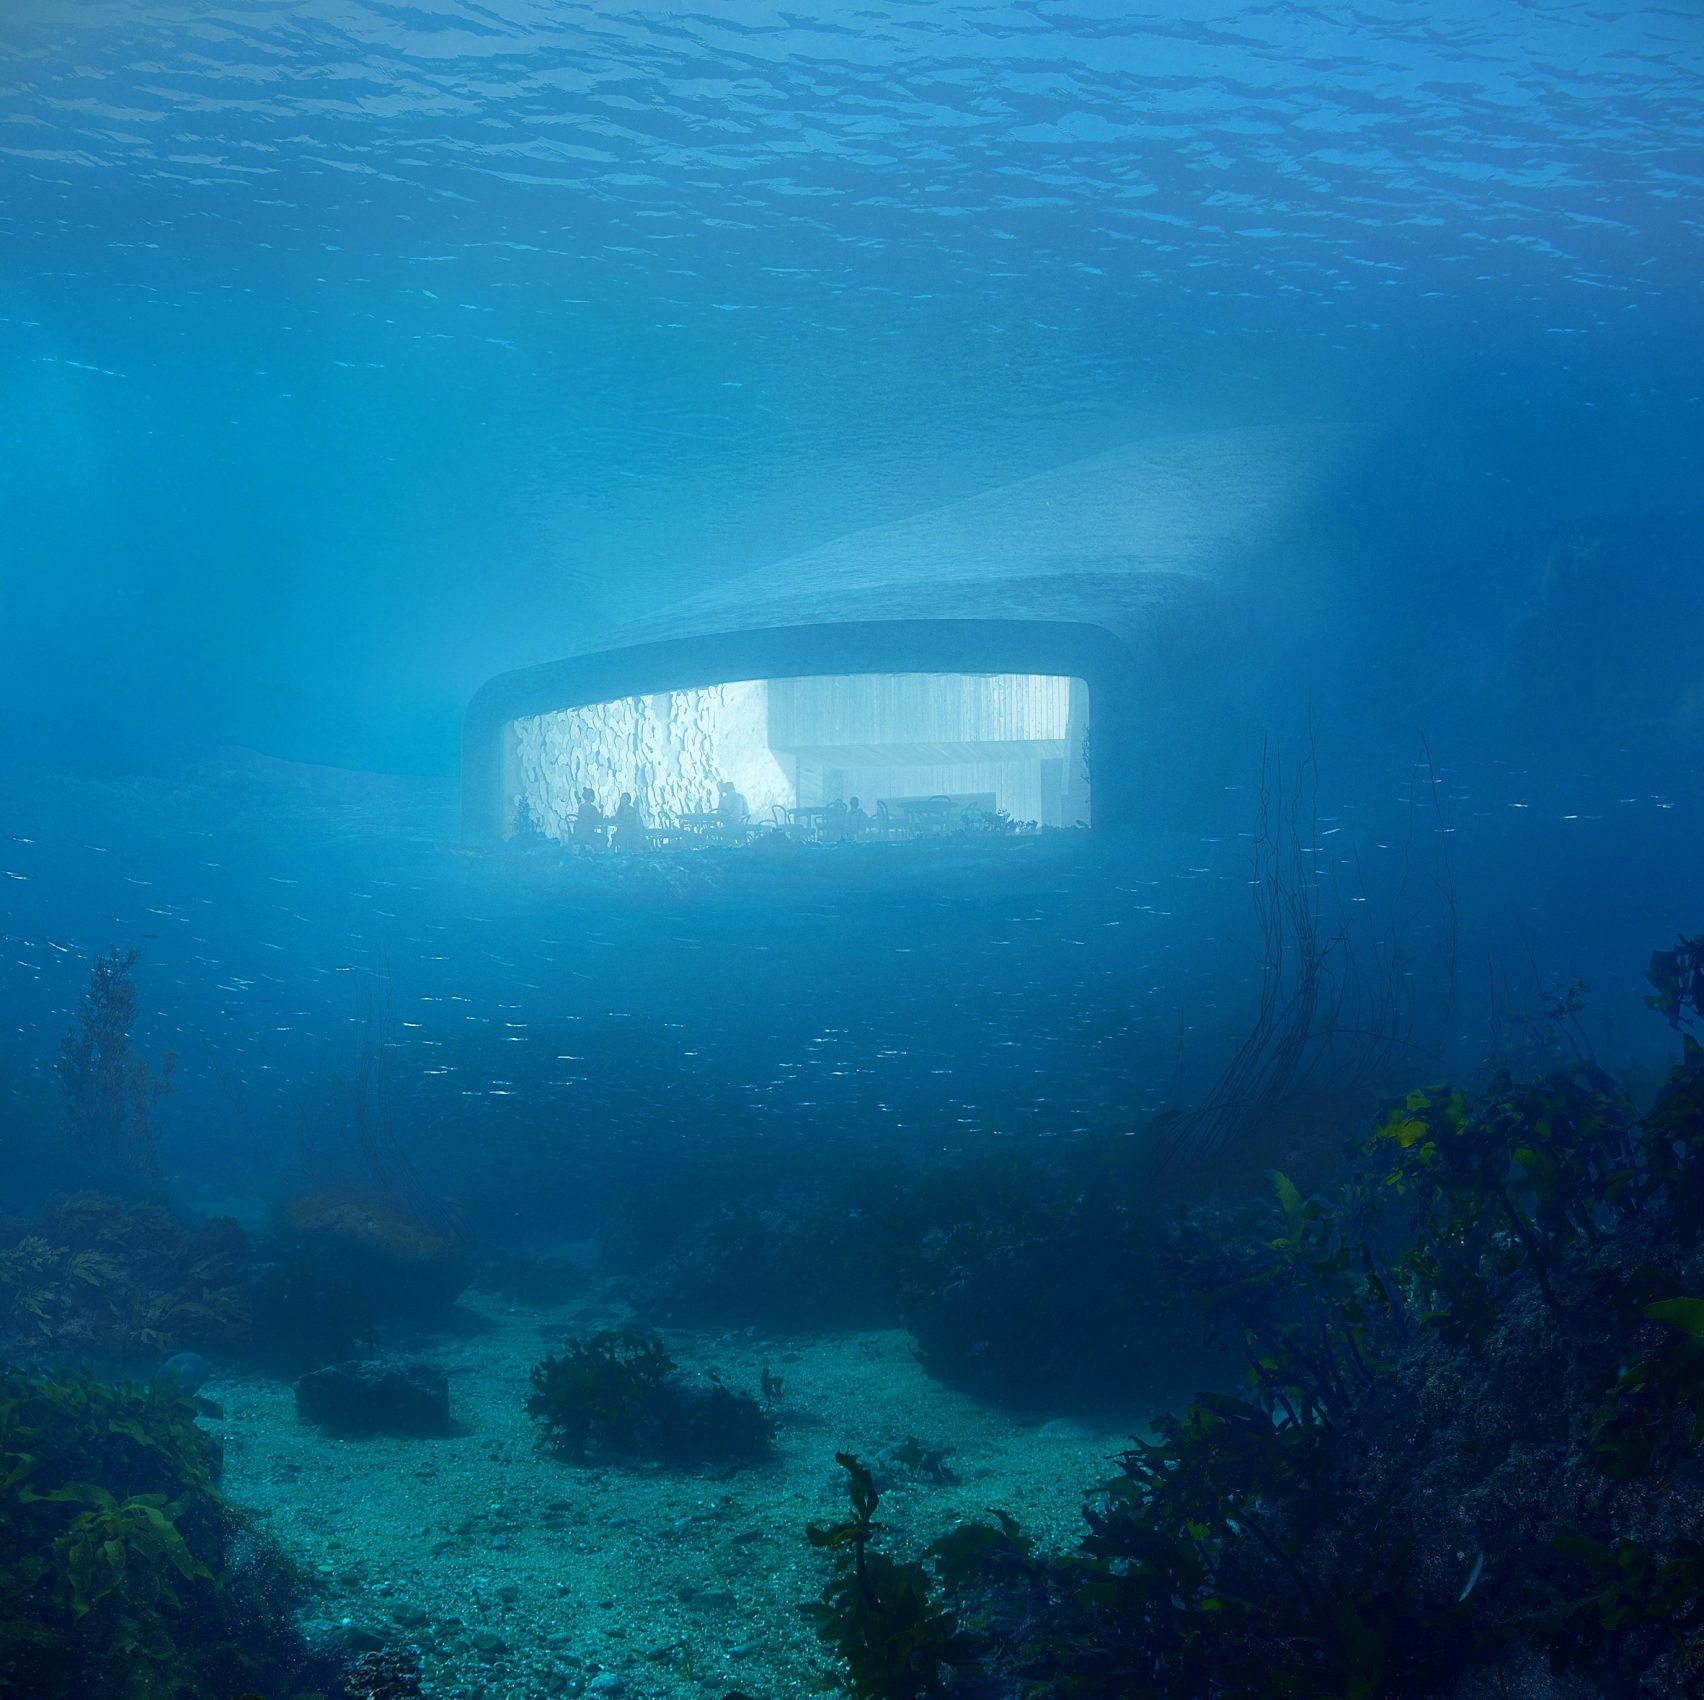 Snohetta has designed Europe's first under water restaurant and research center in Norway.